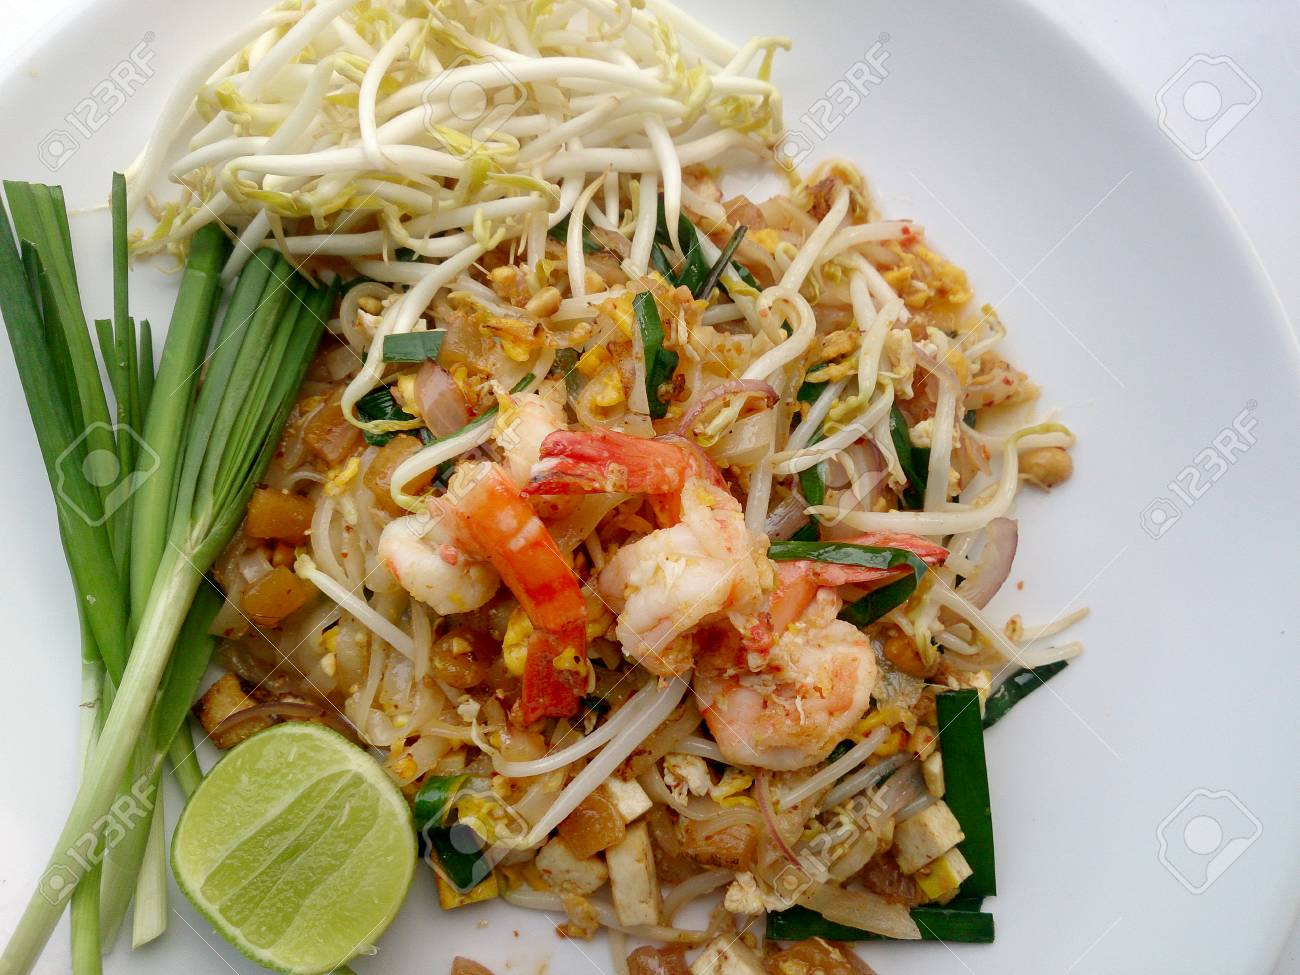 Pad Thai Stir Fried Rice Noodles With Shrimp The One Of Thailand S Stock Photo Picture And Royalty Free Image Image 56006943